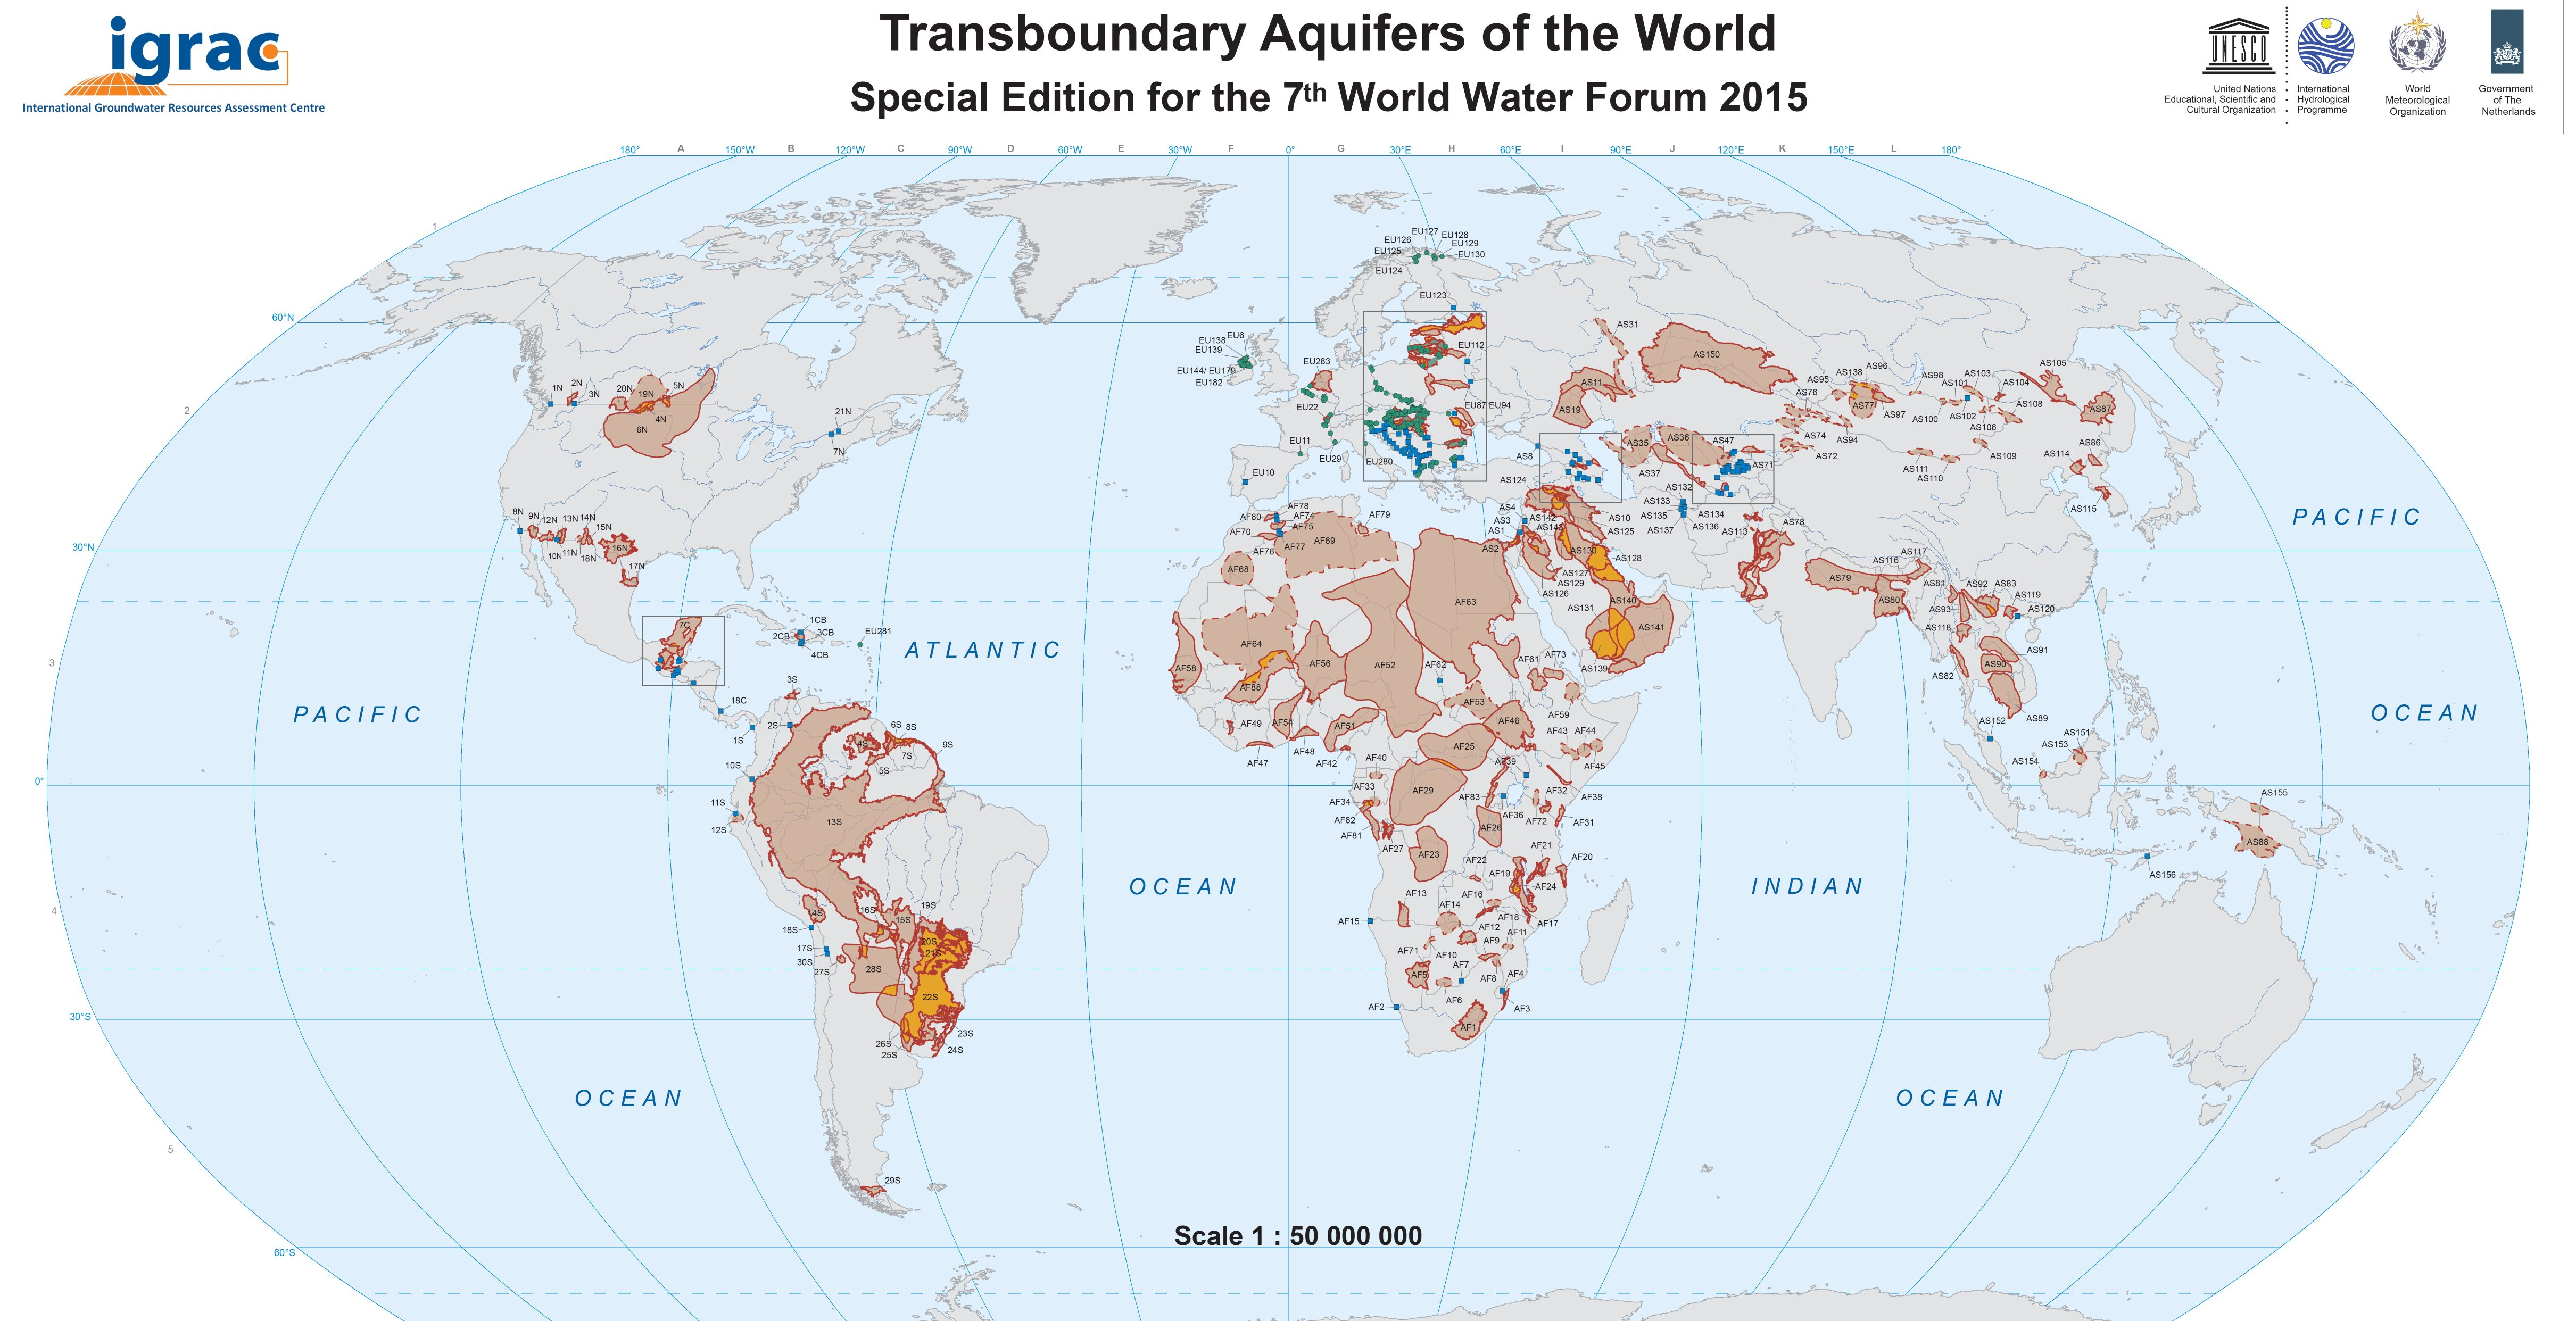 International water law project blog transboundary aquifers archives tba map colour publicscrutiny Images